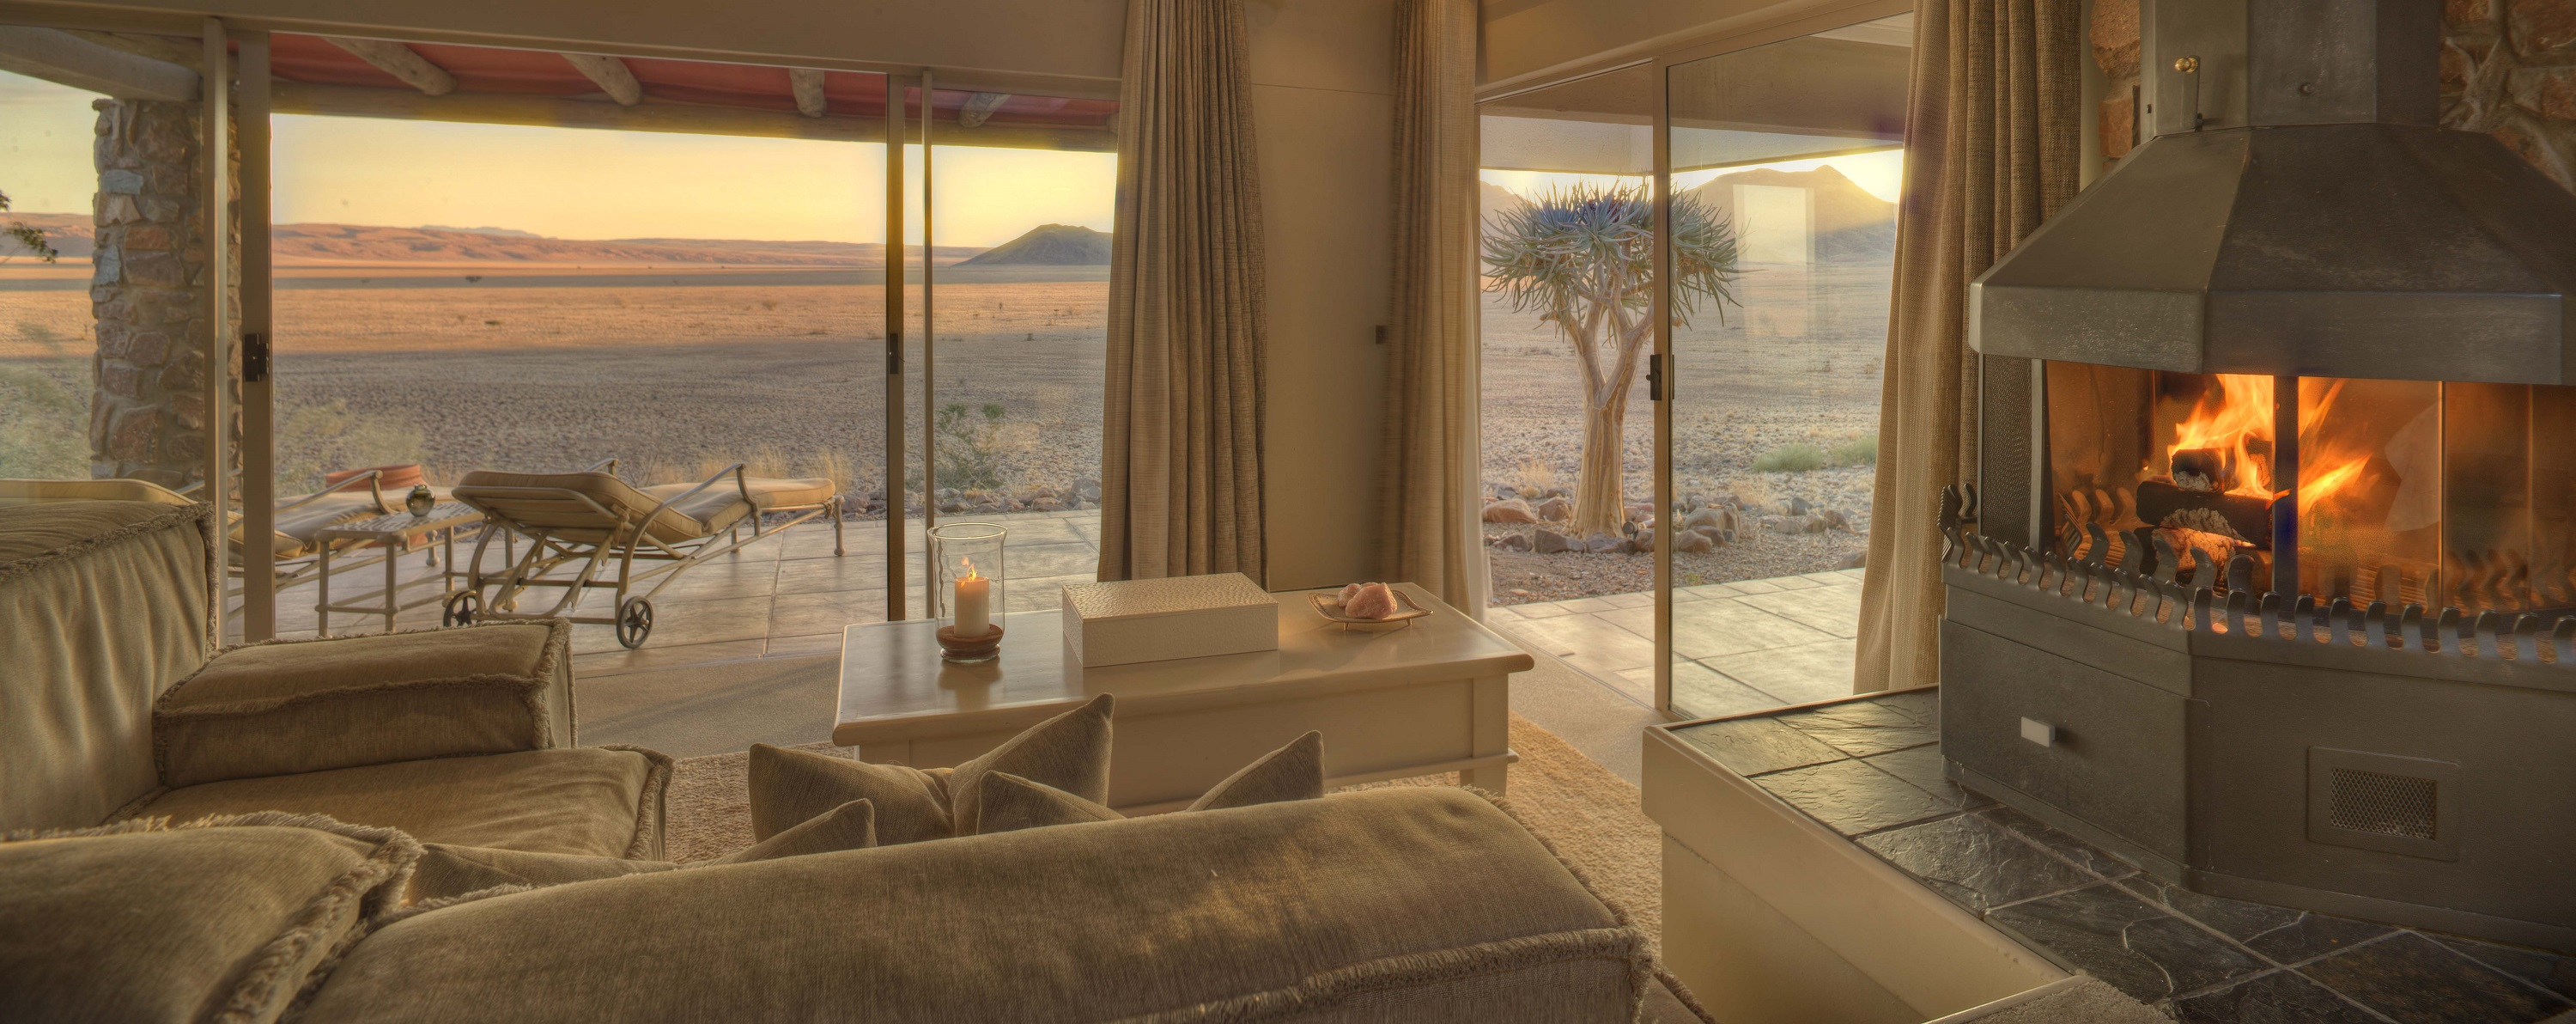 Bedroom With Fireplace Andbeyond Sossusvlei Desert Lodge